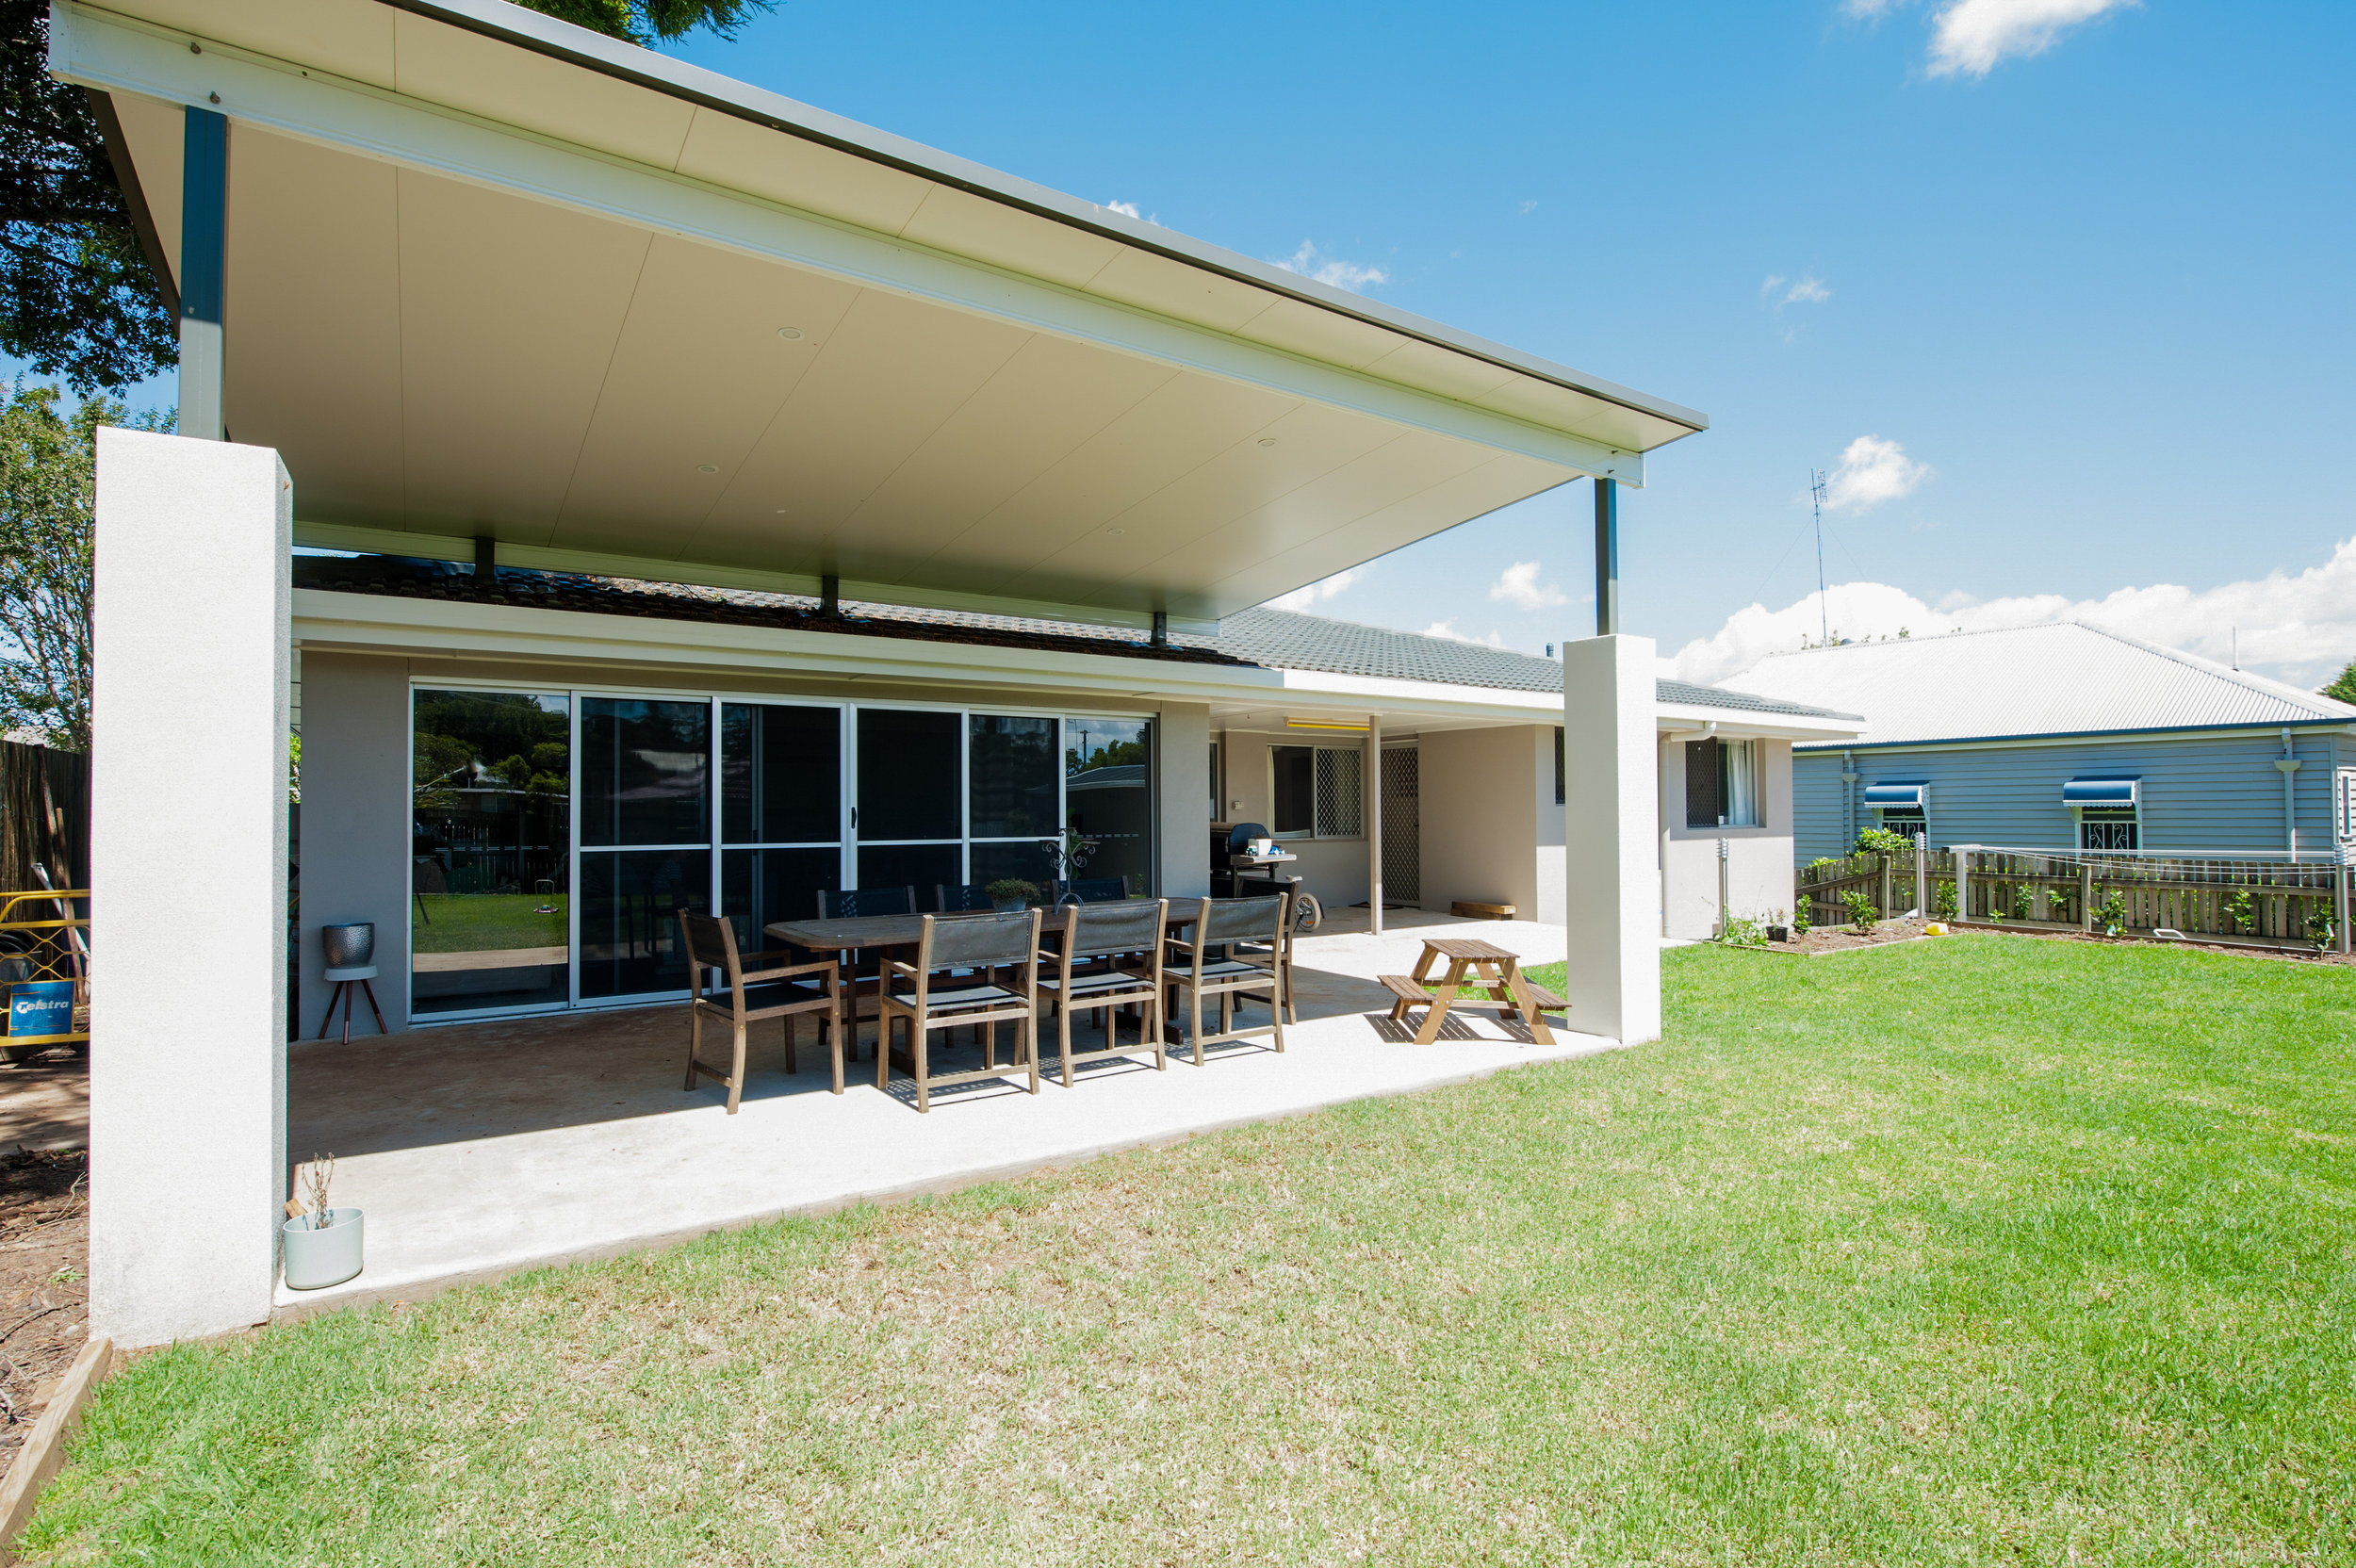 Insulated Fly-Over Patio Roof — Prestige Patios & Outdoors